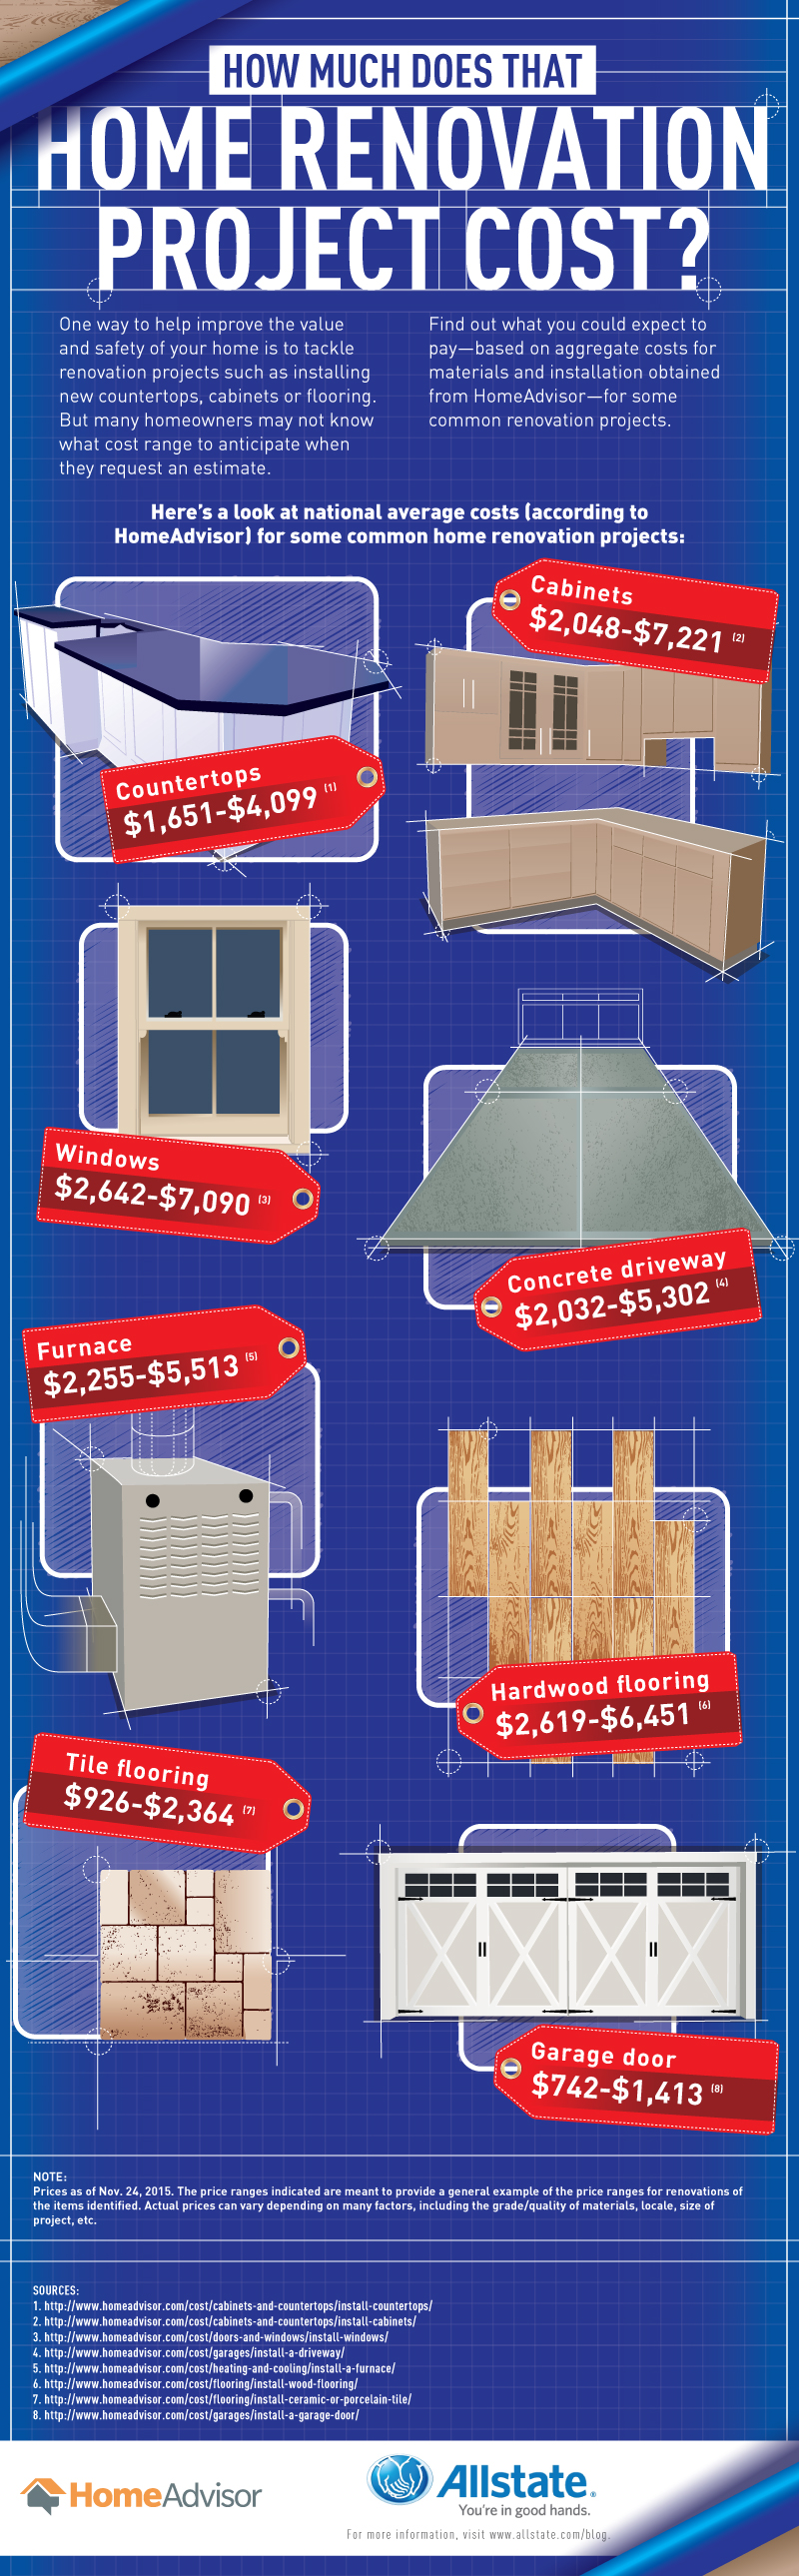 allstate_homeadvisor-11dec15v2